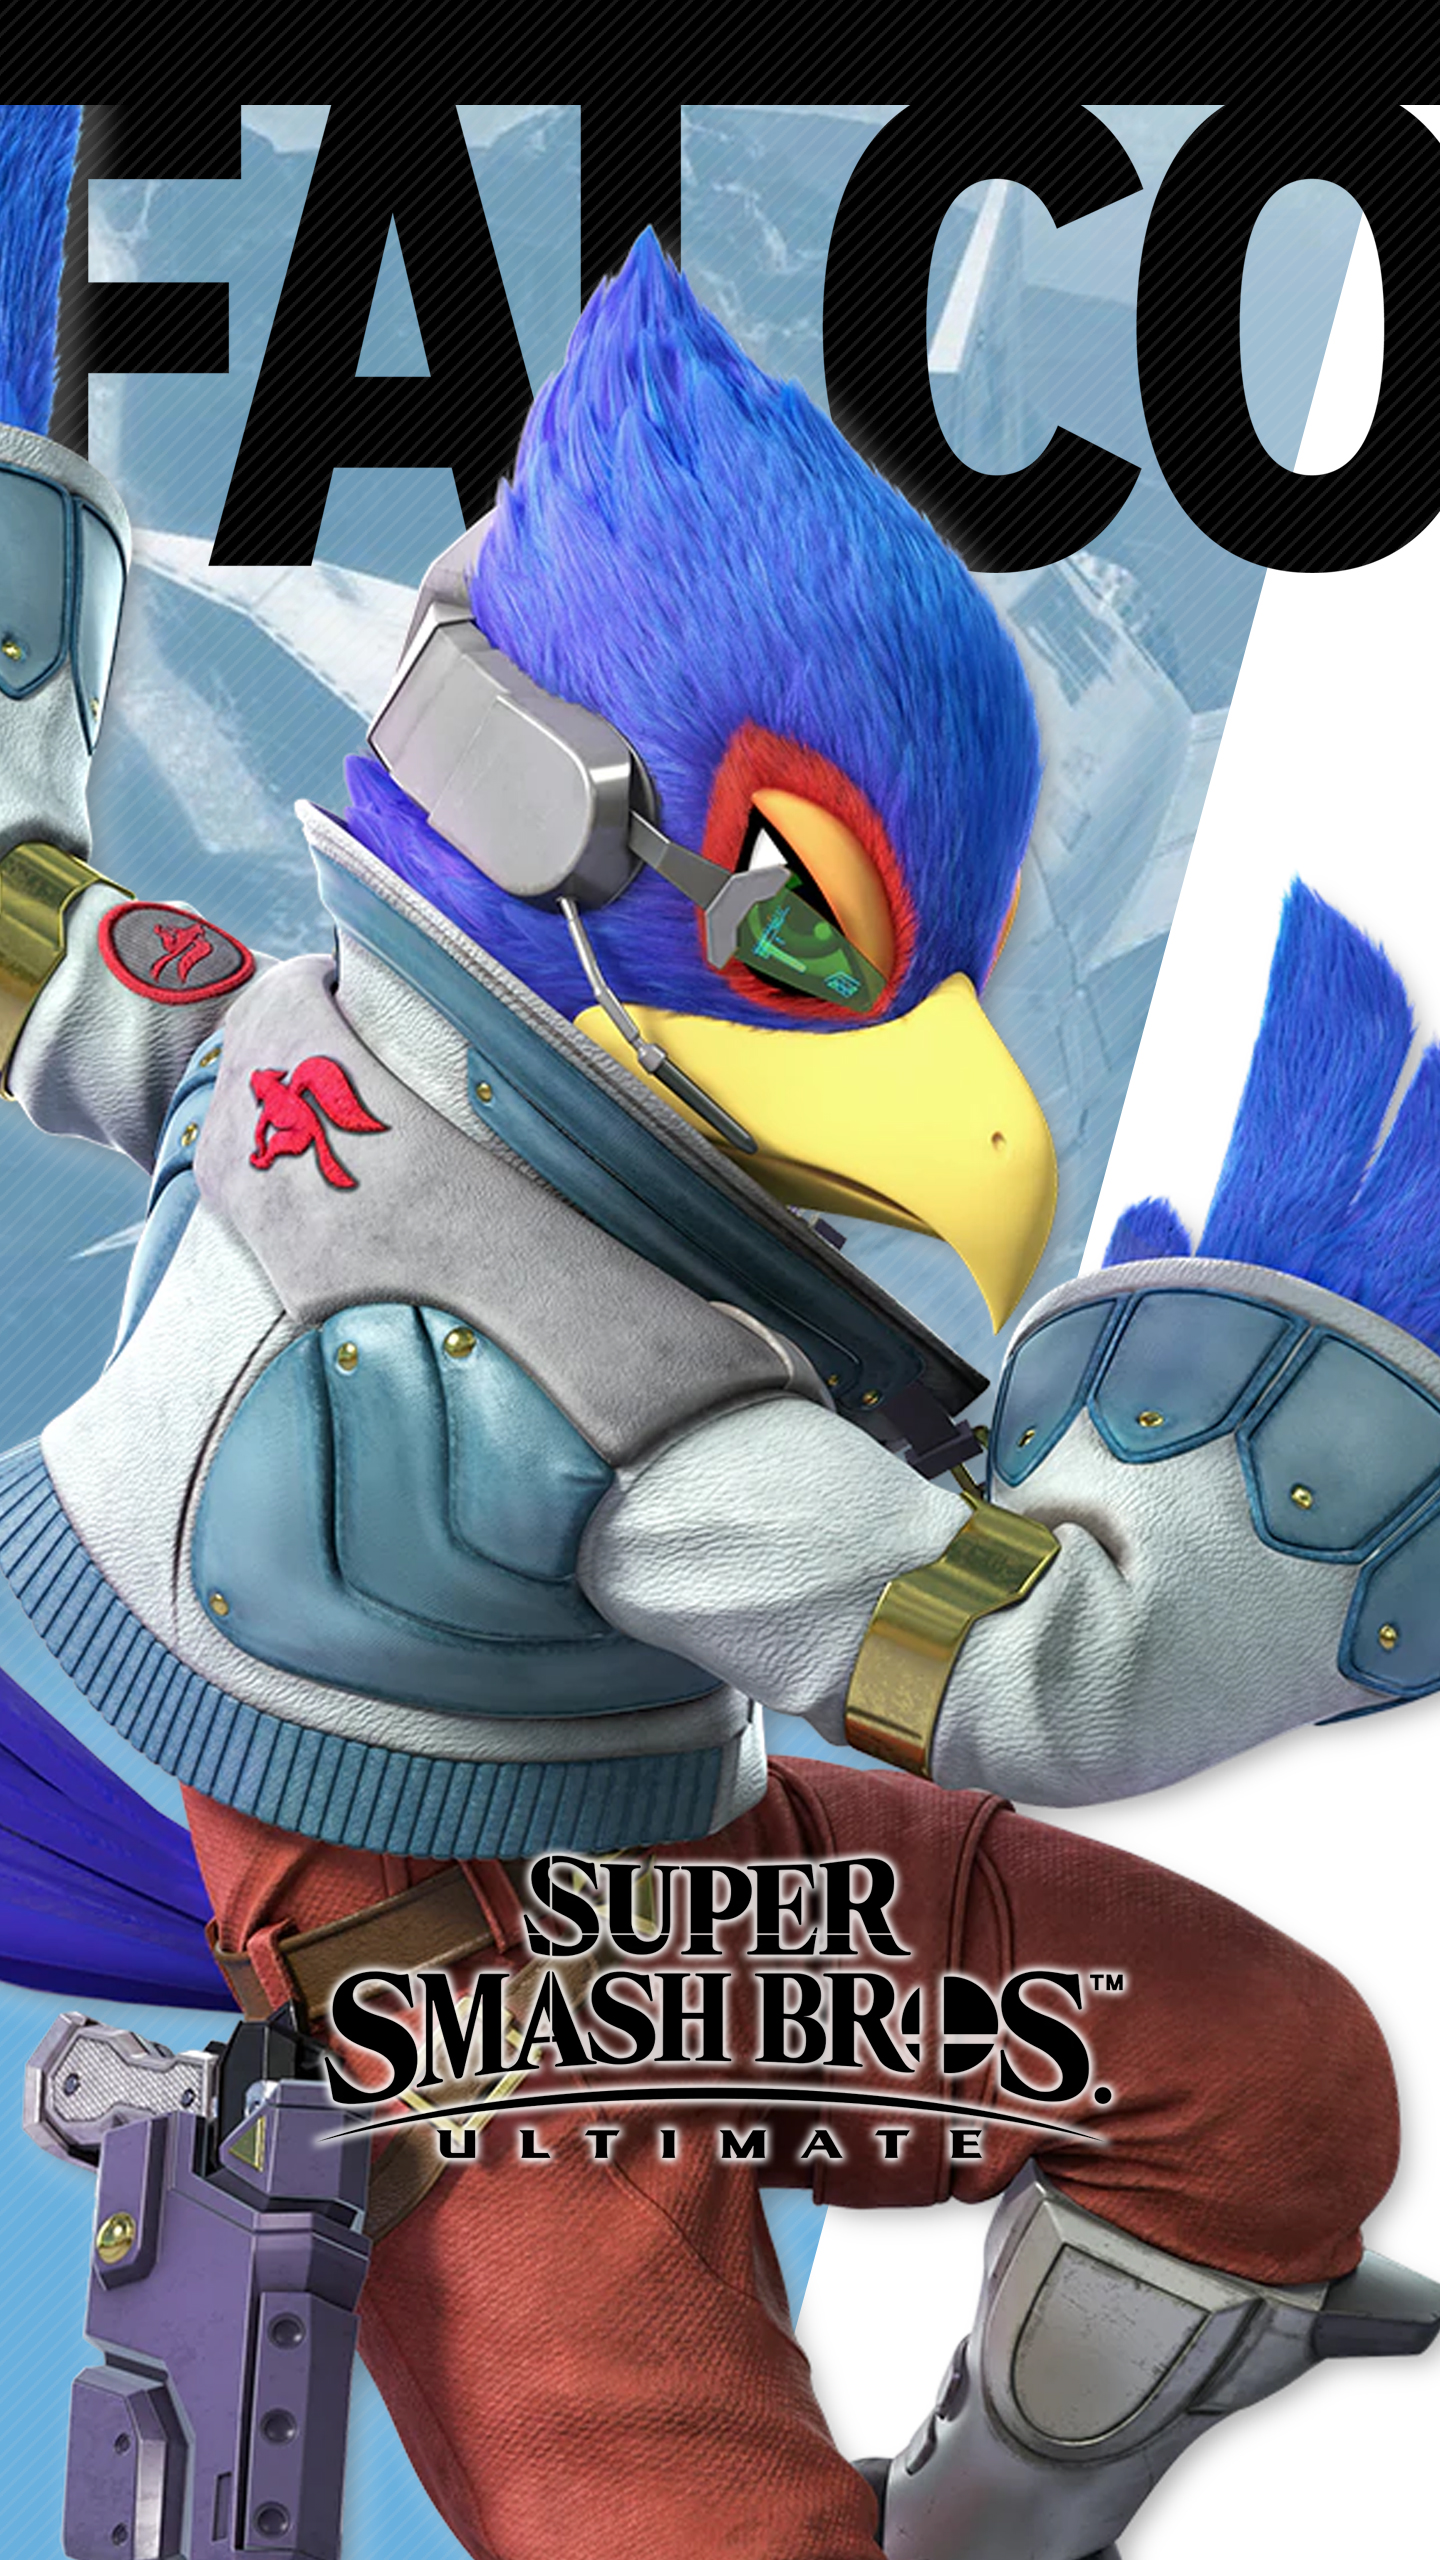 Iphone 6s Plus Wallpaper Size Super Smash Bros Ultimate Falco Wallpapers Cat With Monocle